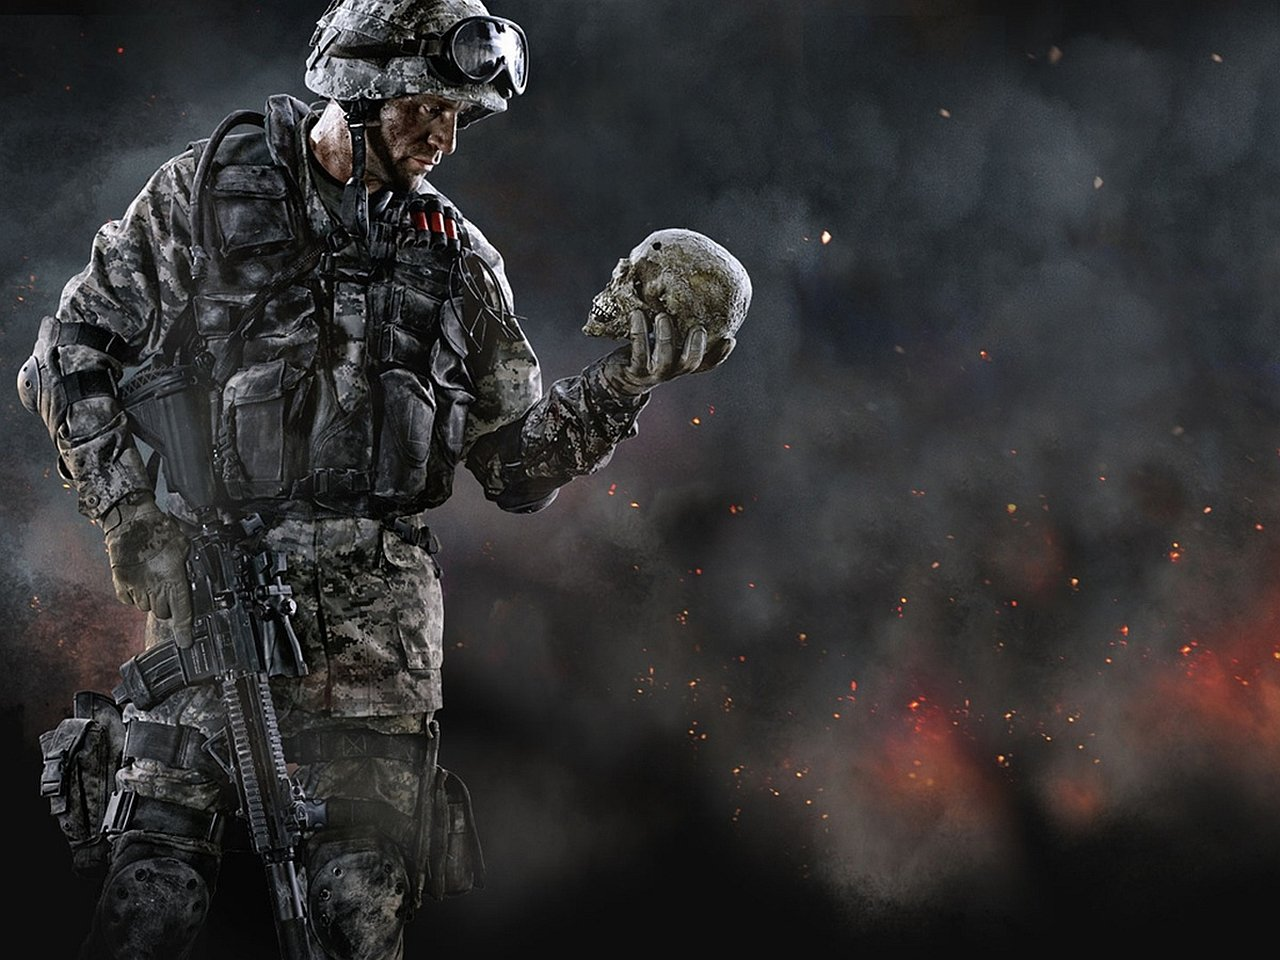 48 awesome military wallpapers on wallpapersafari - Military screensavers wallpapers ...